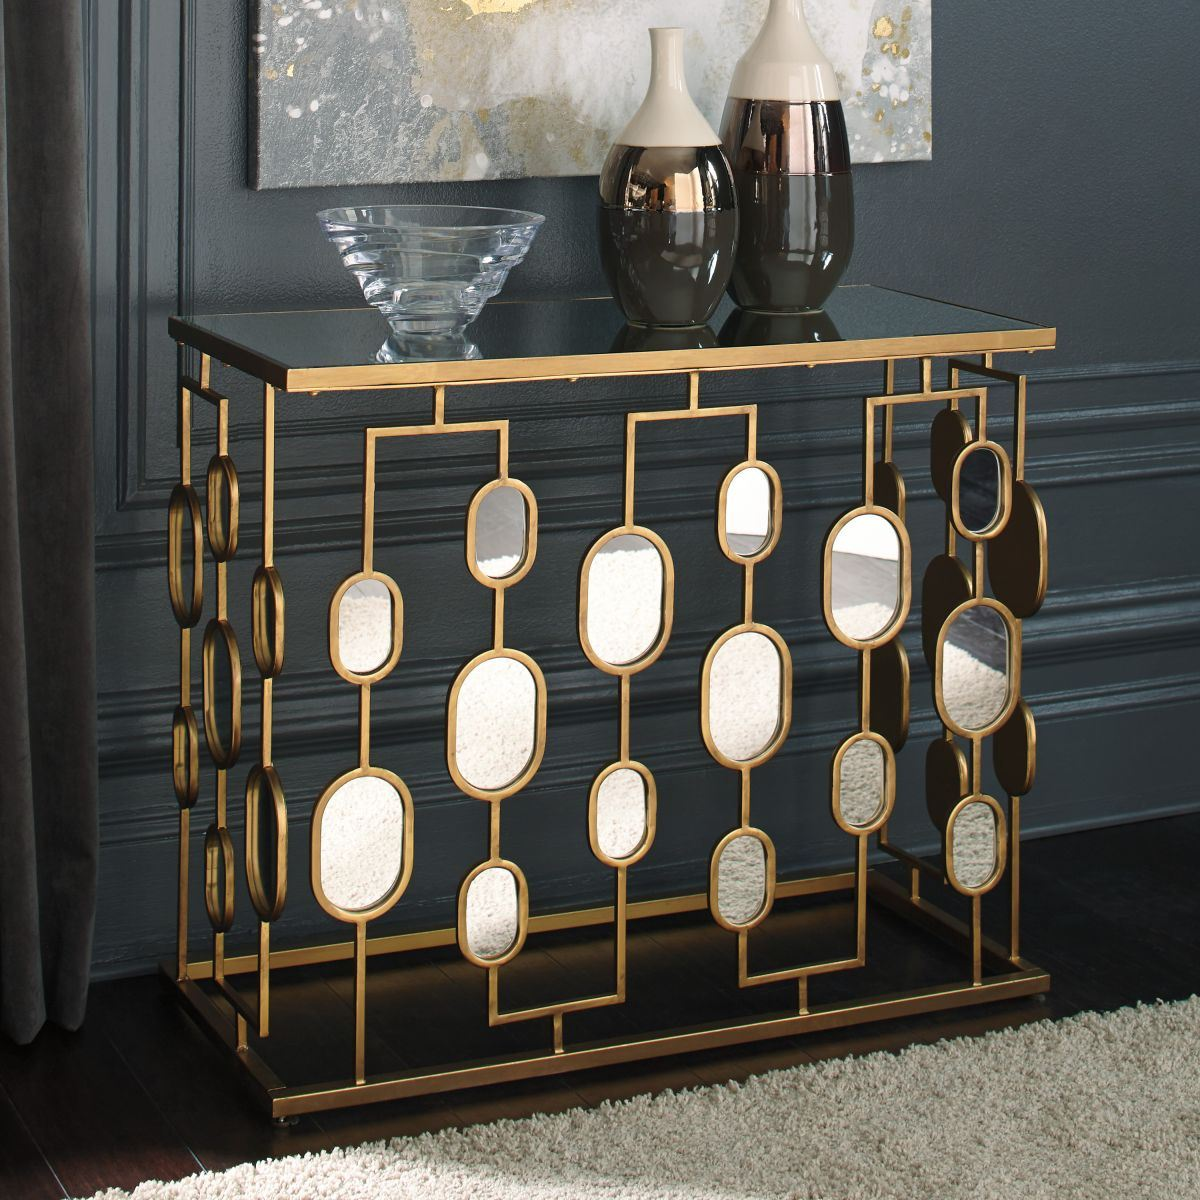 Picture of Majaci Console Table